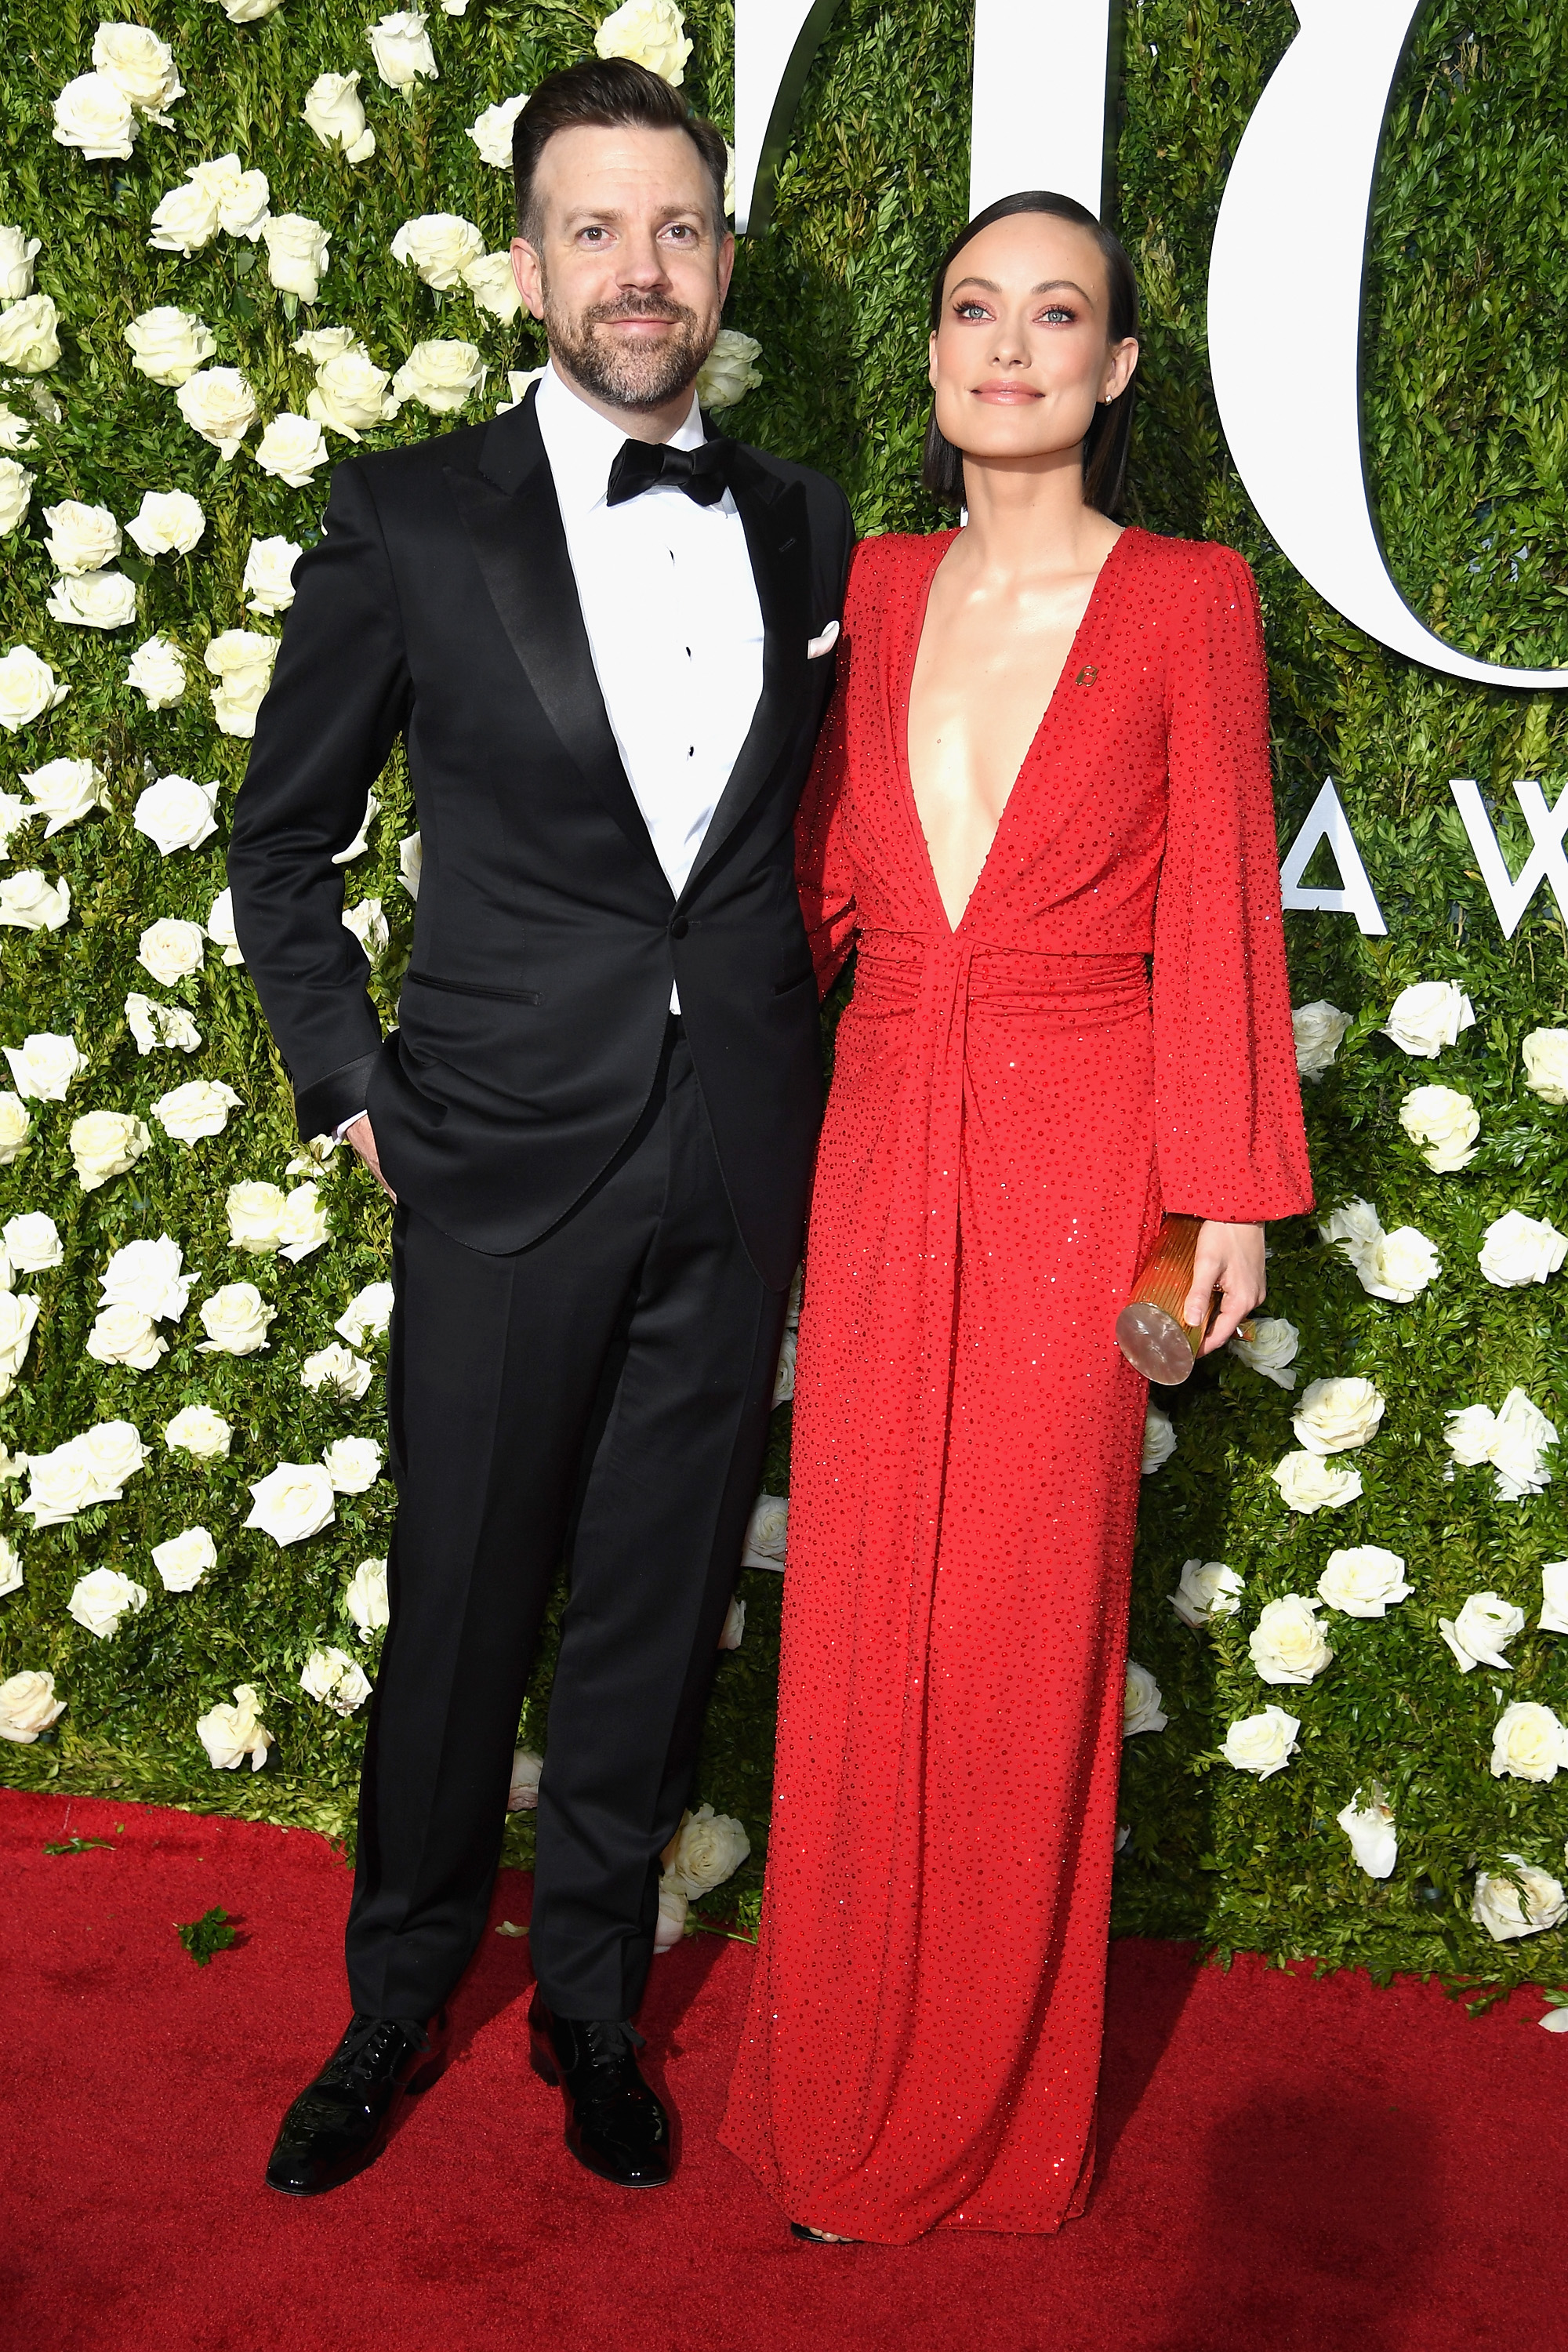 NEW YORK, NY - JUNE 11: Jason Sudekis and Olivia Wilde attend the 2017 Tony Awards at Radio City Music Hall on June 11, 2017 in New York City.  (Photo by Dimitrios Kambouris/Getty Images for Tony Awards Productions)